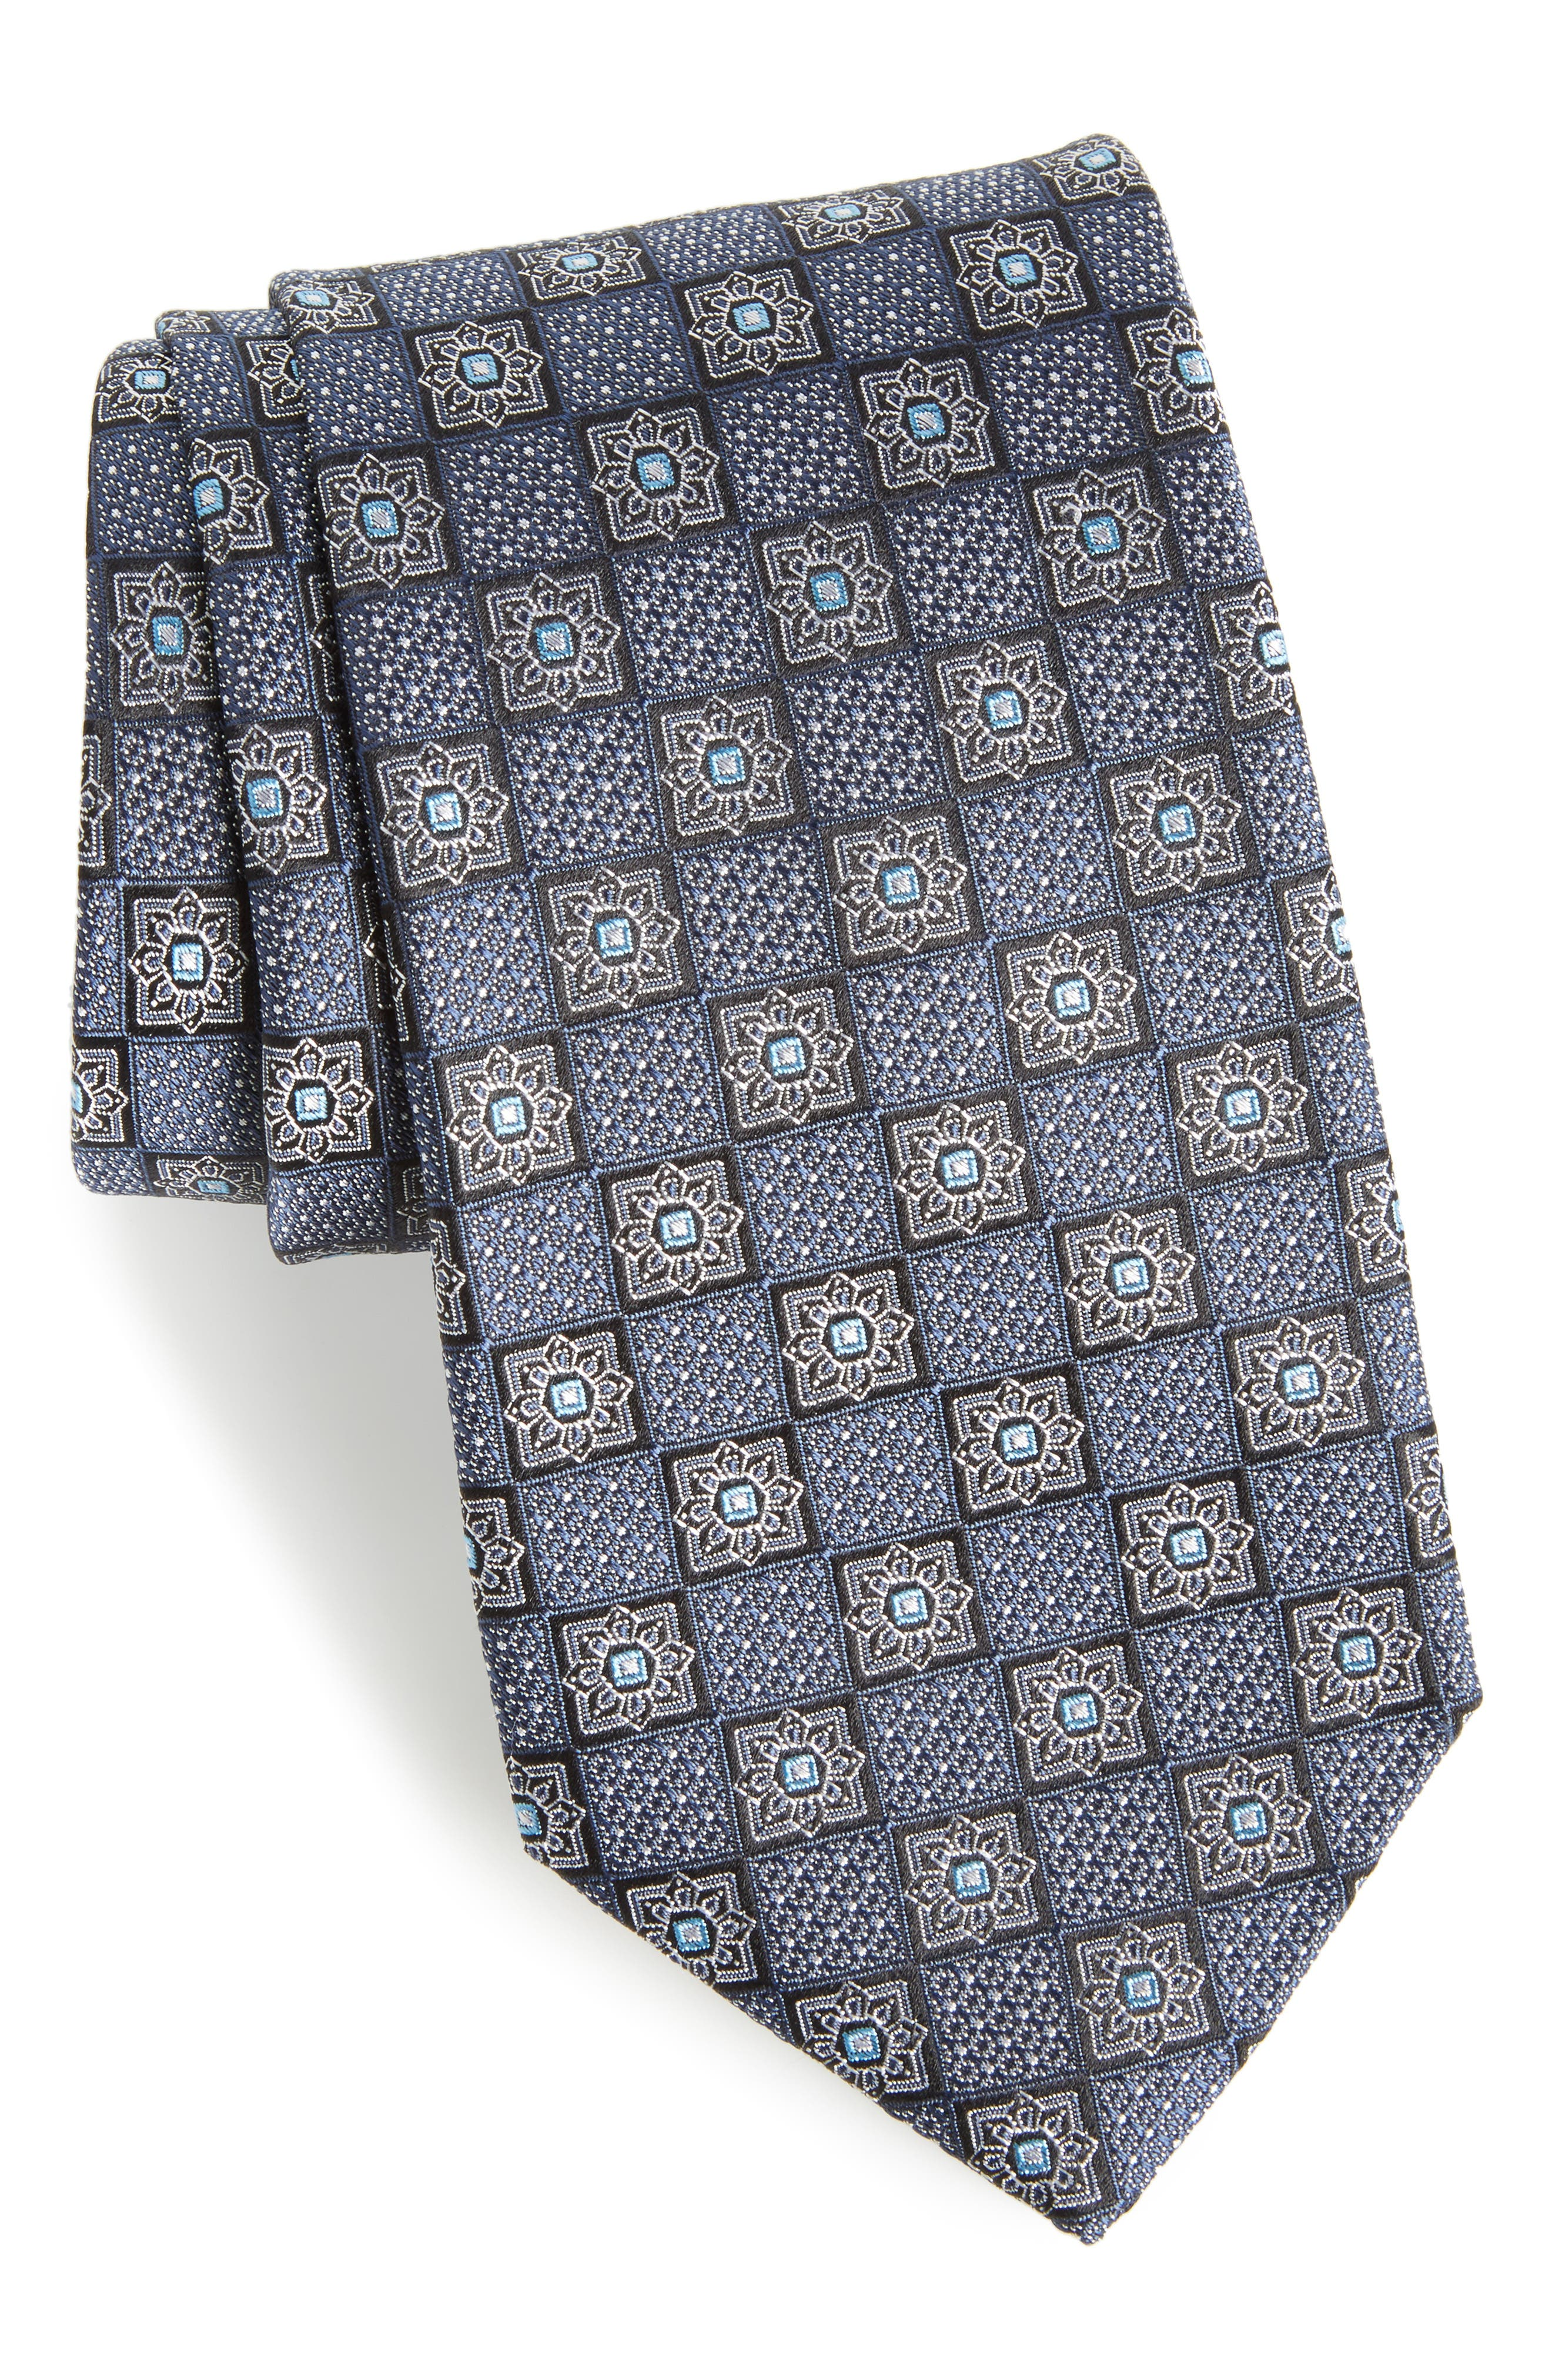 Settala Medallion Silk Tie,                             Main thumbnail 1, color,                             001